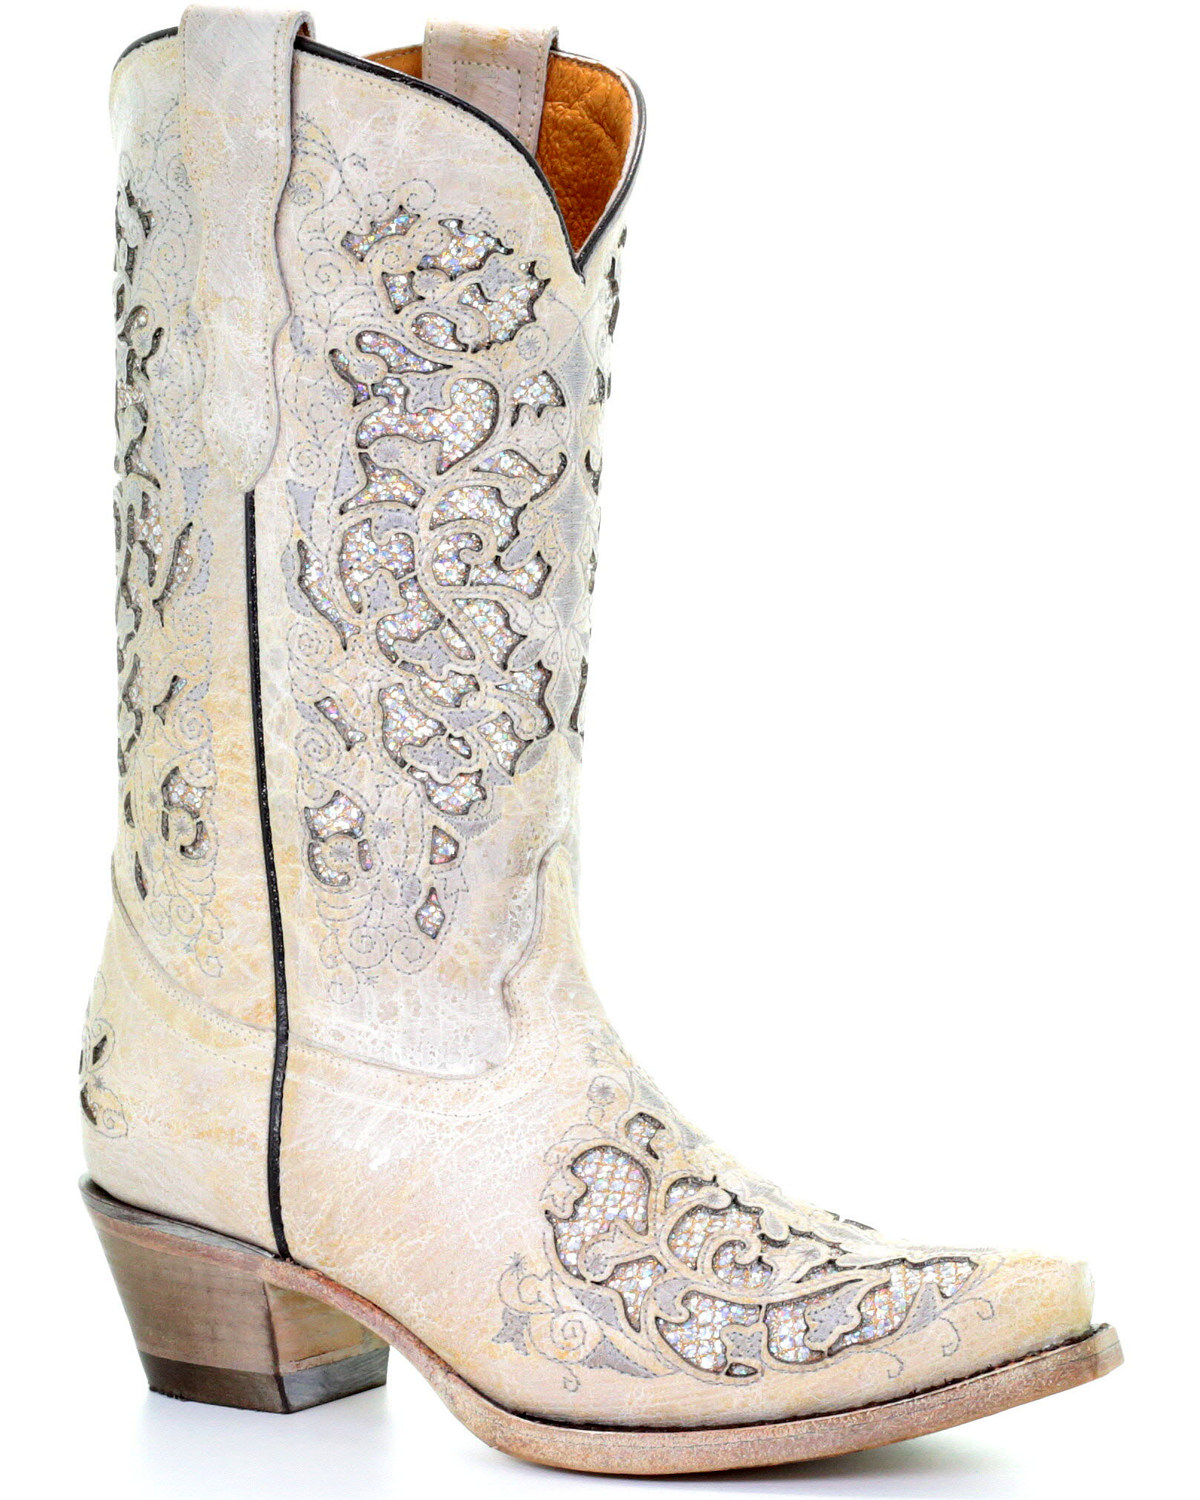 Corral Girls' White Glitter Inlay Boots